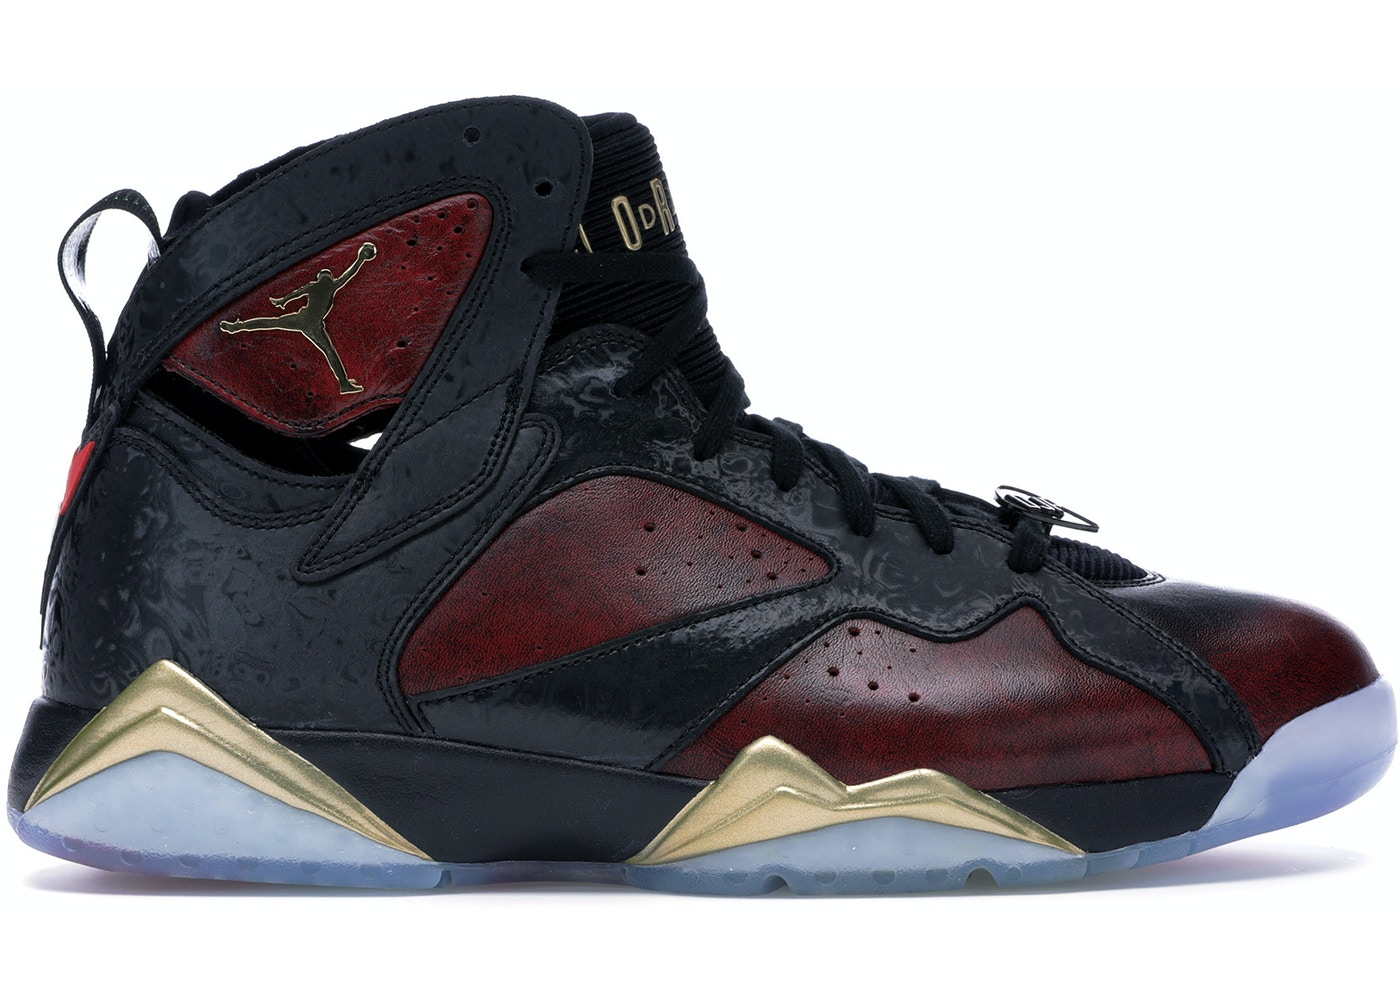 new style f3c0a 81445 Air Jordan 7 Shoes - Average Sale Price